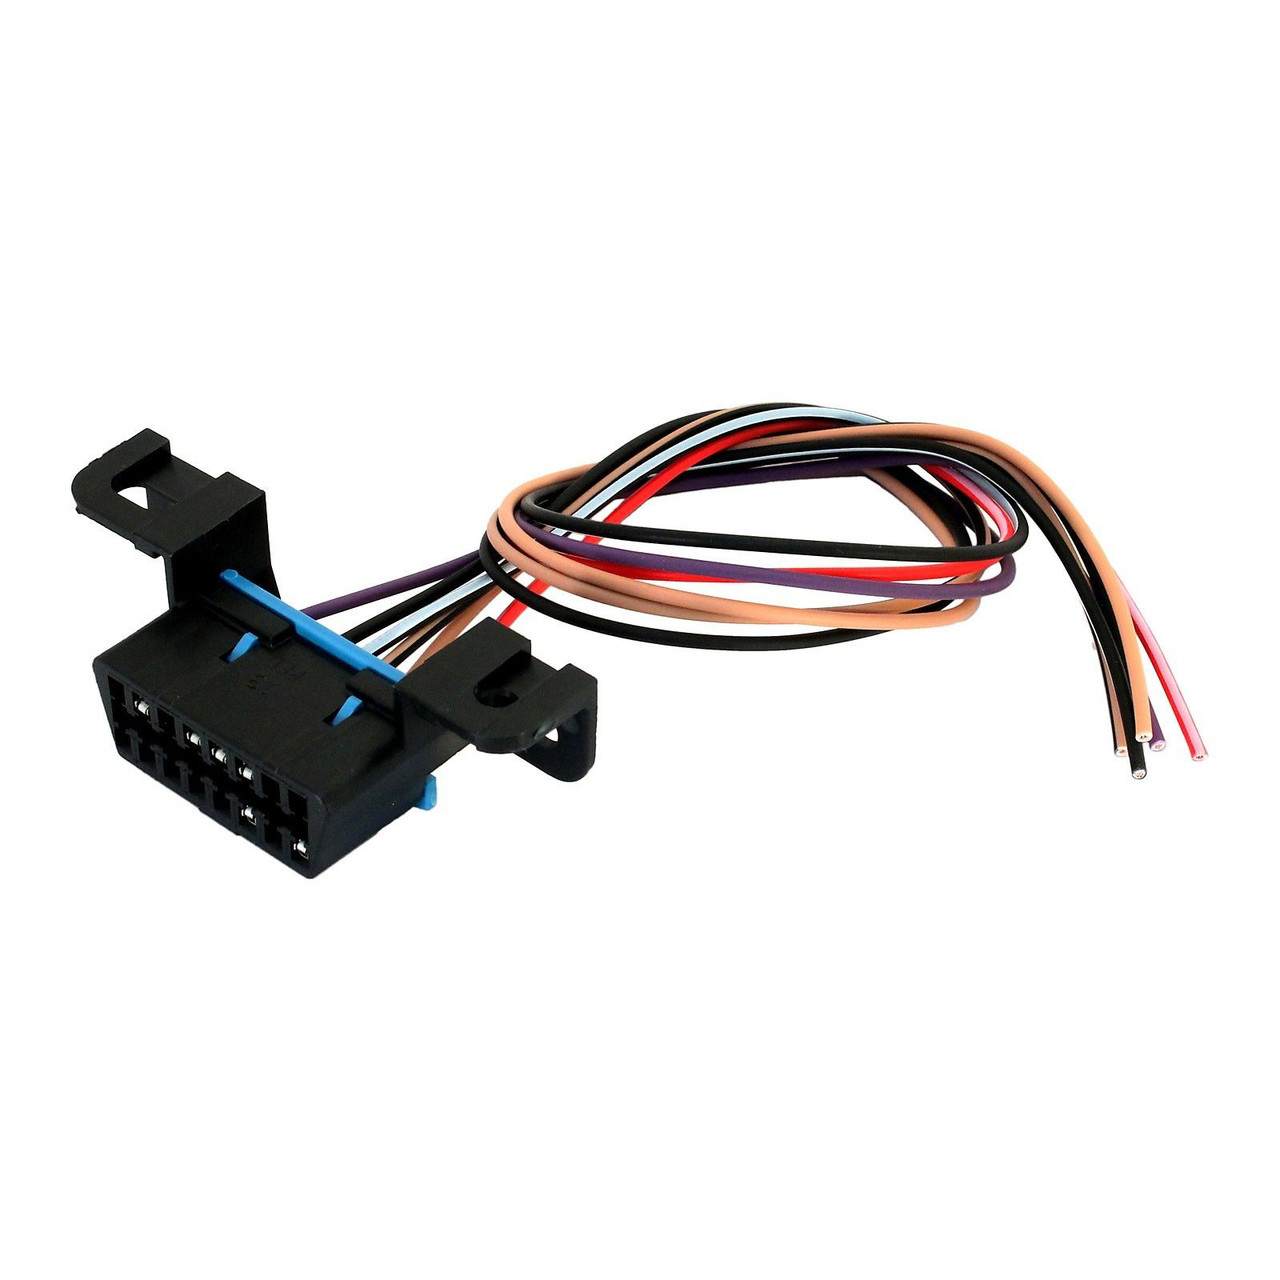 OBDII OBD2 J1962 Class 2 CAN BUS Wiring Harness Connector Pigtail